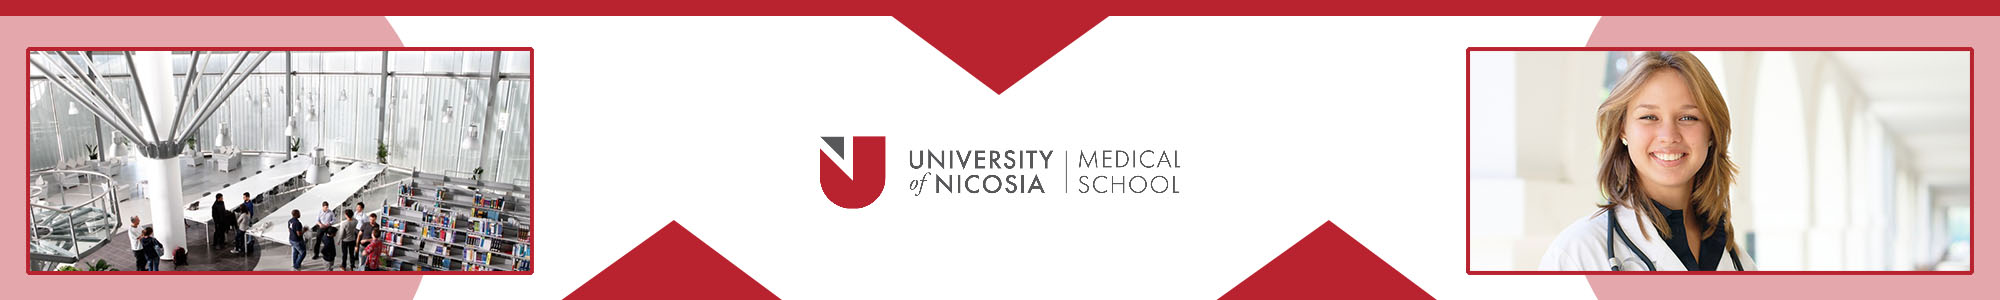 University of Nicosia Medical School (EDEX-EDUCATIONAL EXCELLENCE CORPORATION LTD)